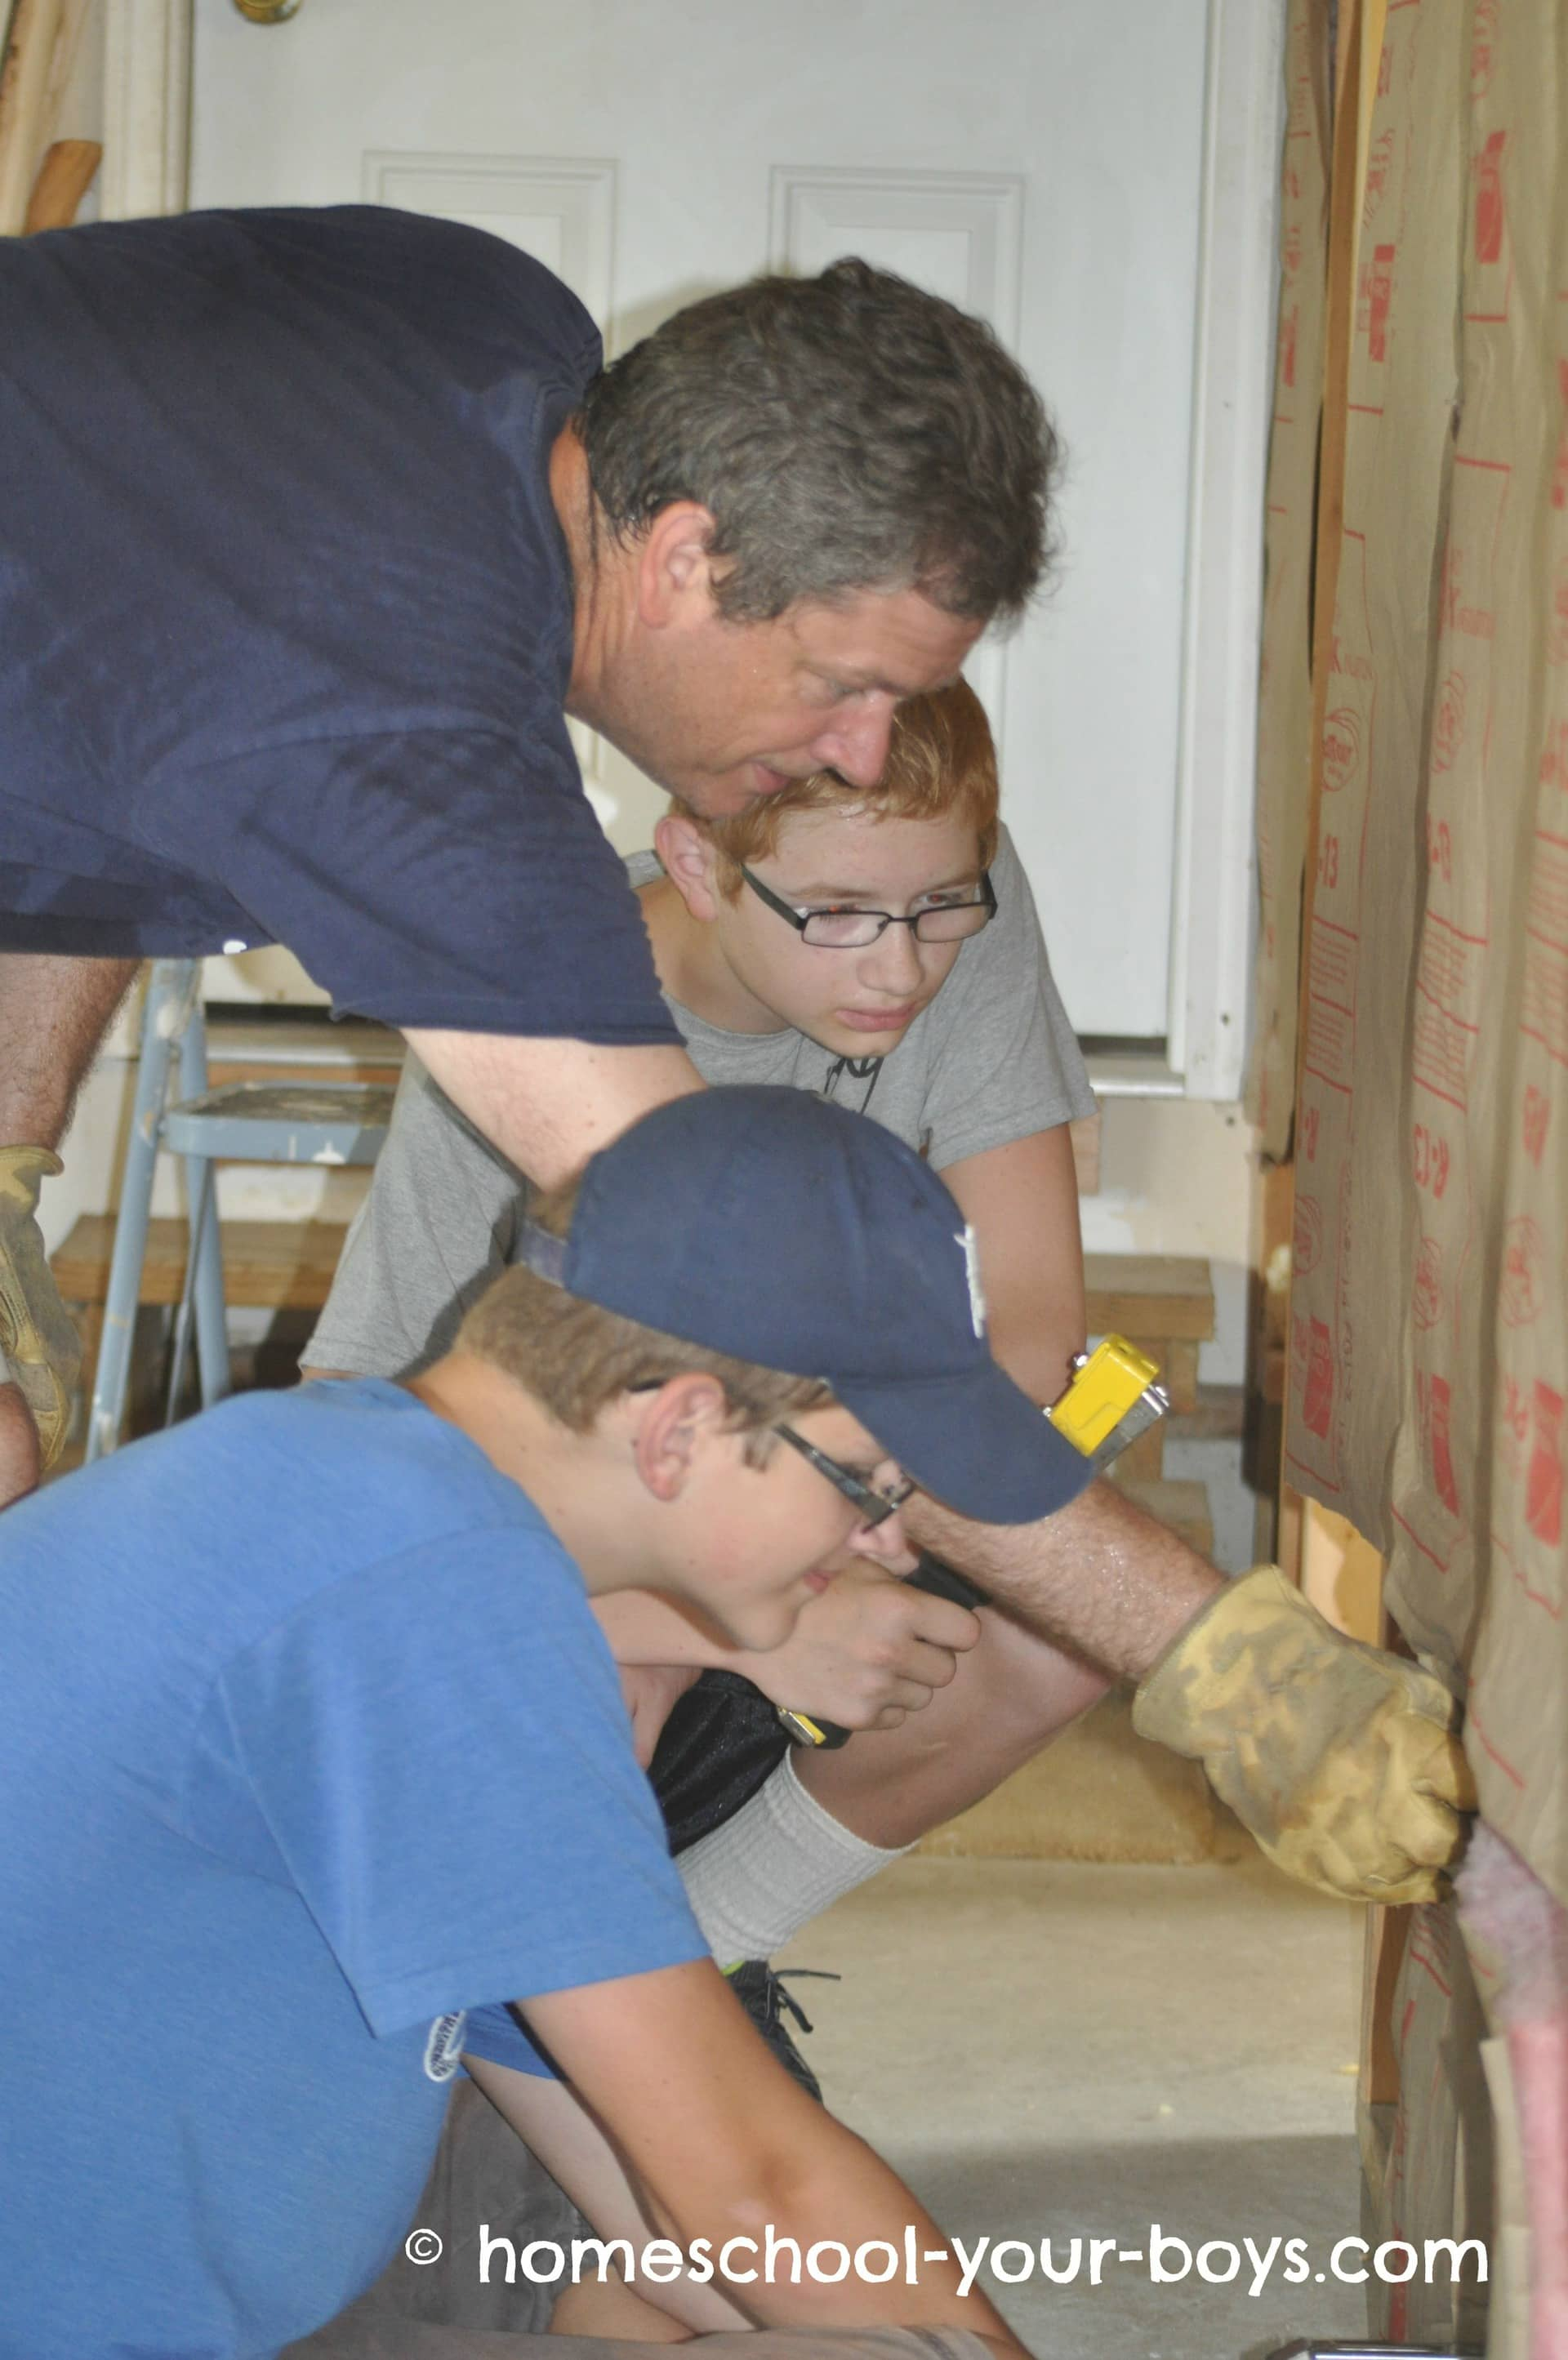 Dad showing his sons how to hang insulation